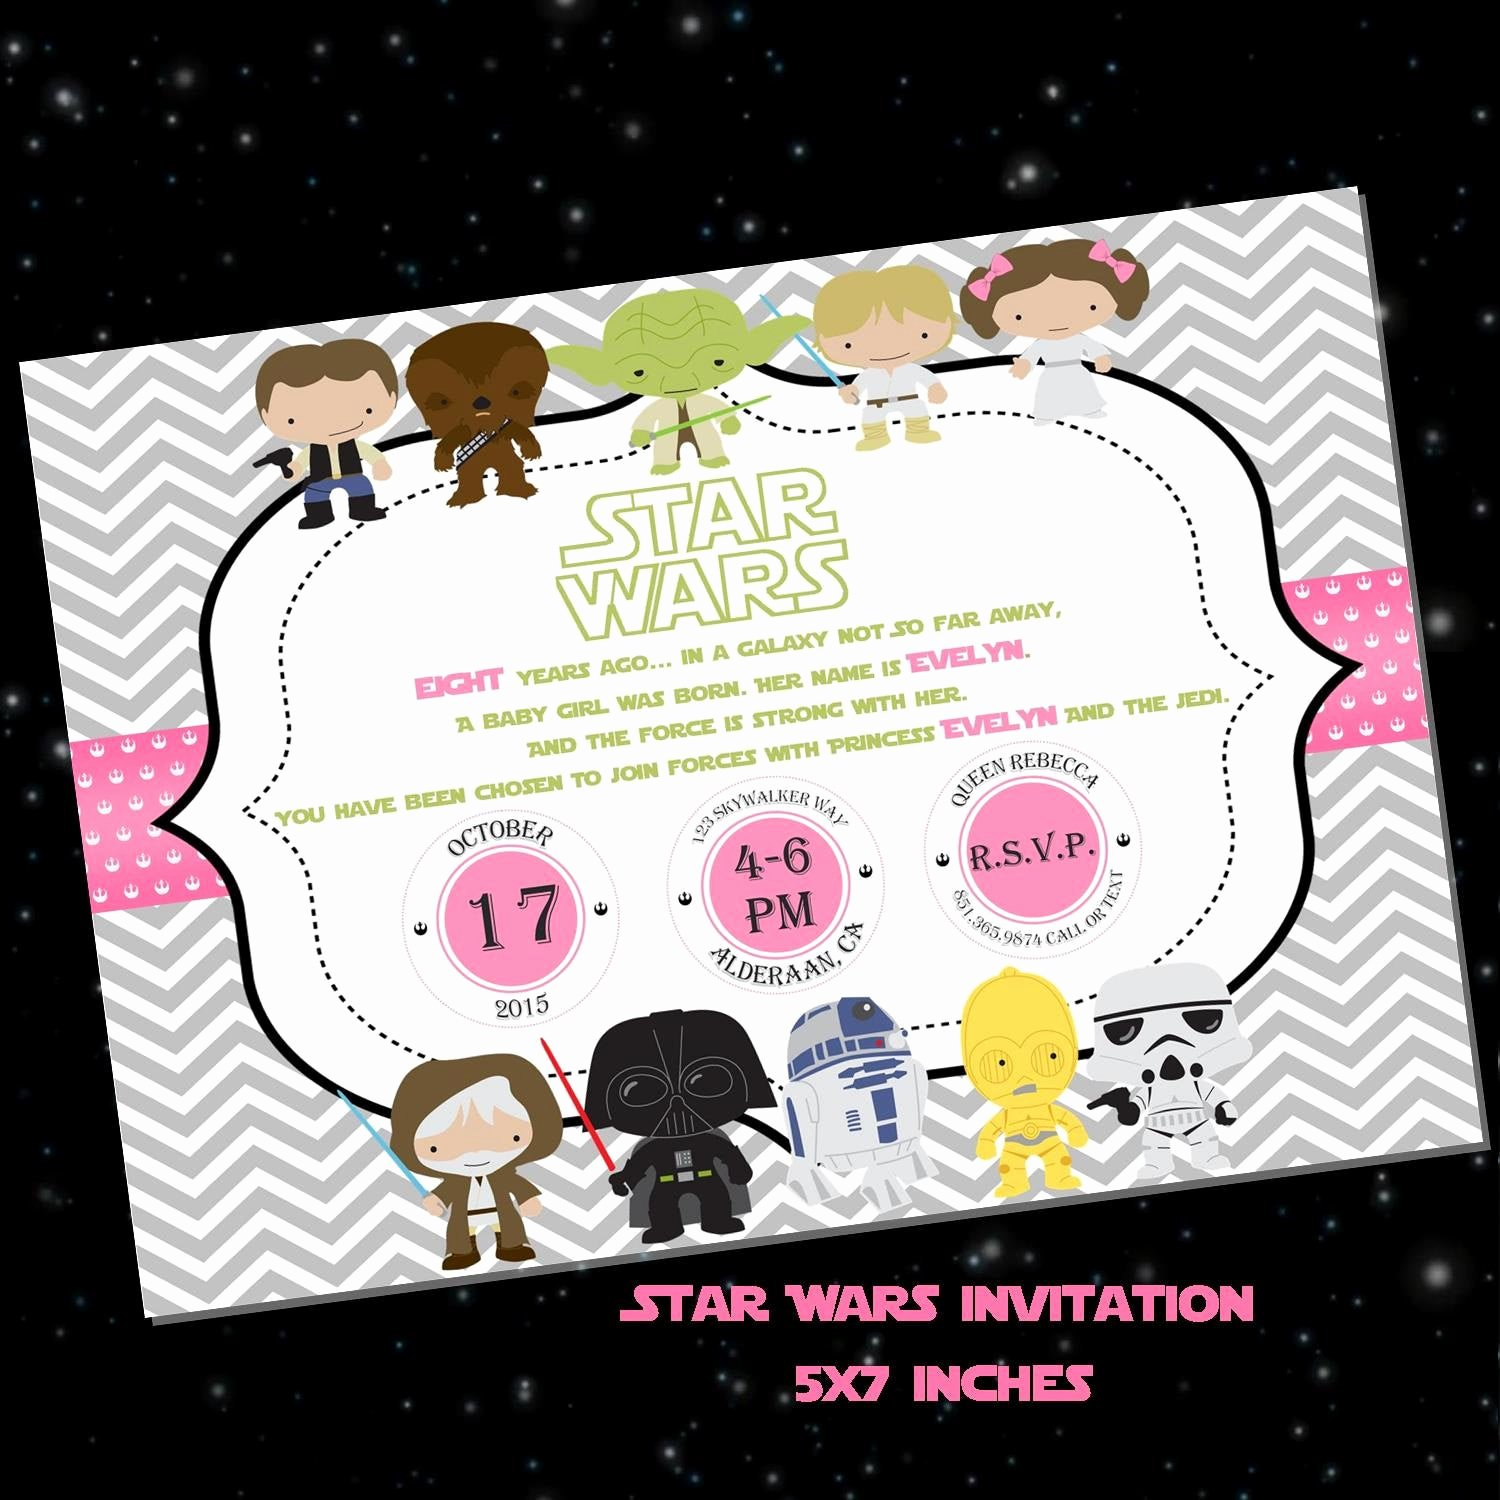 Star Wars Personalized Birthday Invitations Awesome Pink Star Wars Birthday Invitation Chevron Personalized